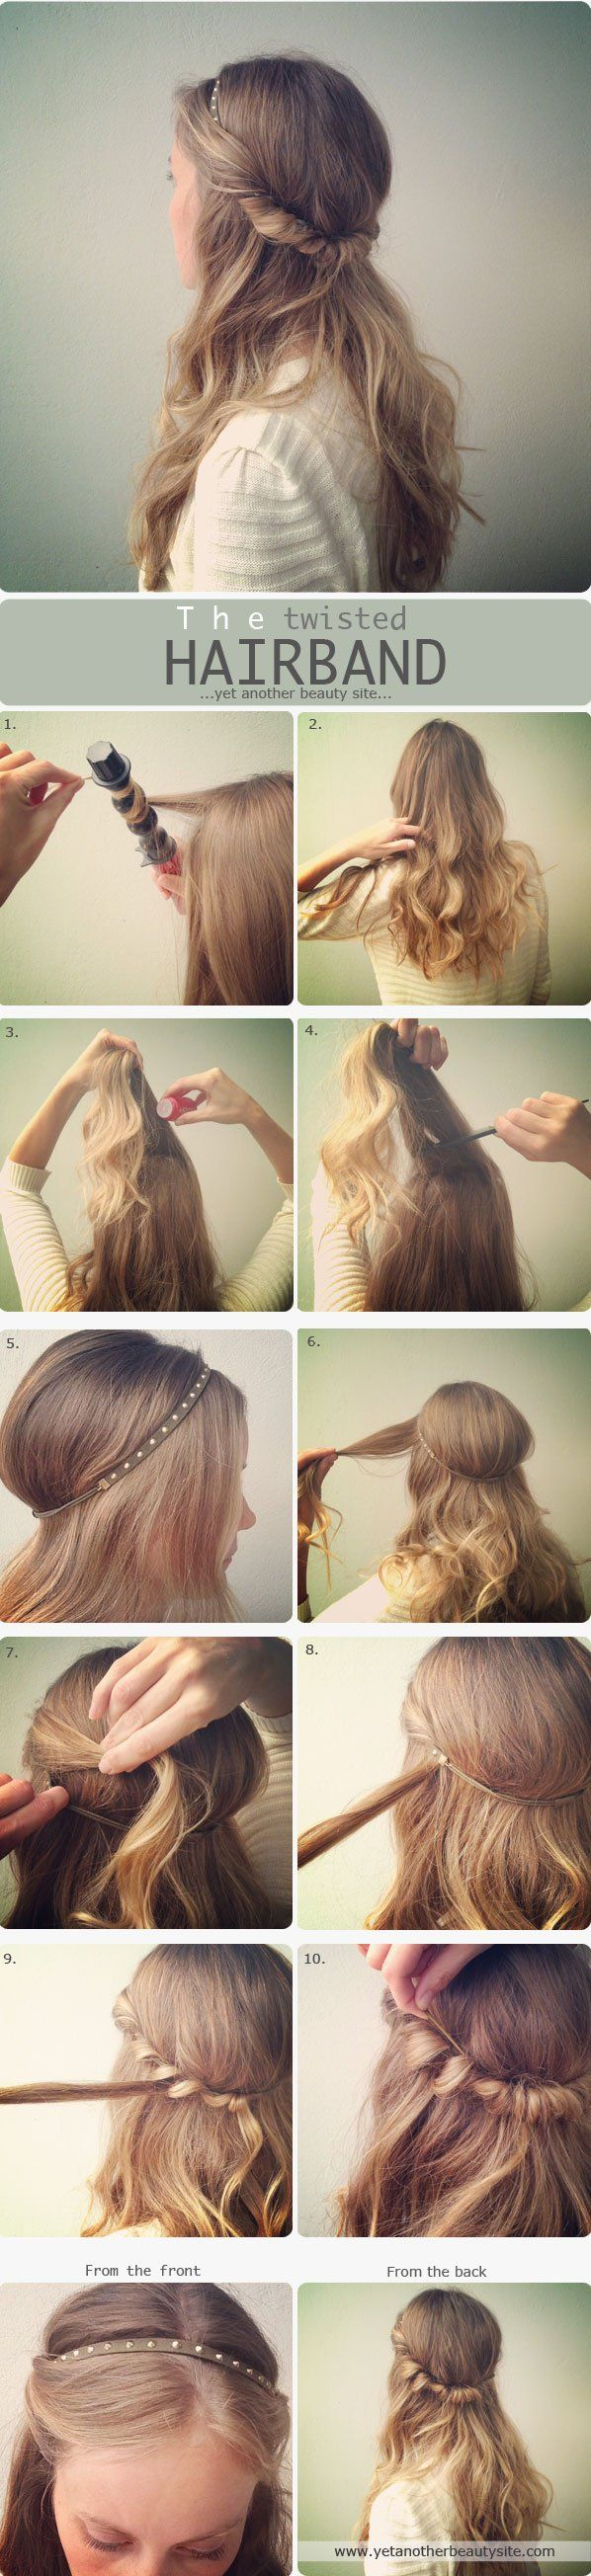 Best of Hair Tutorials - the twisted hairband.